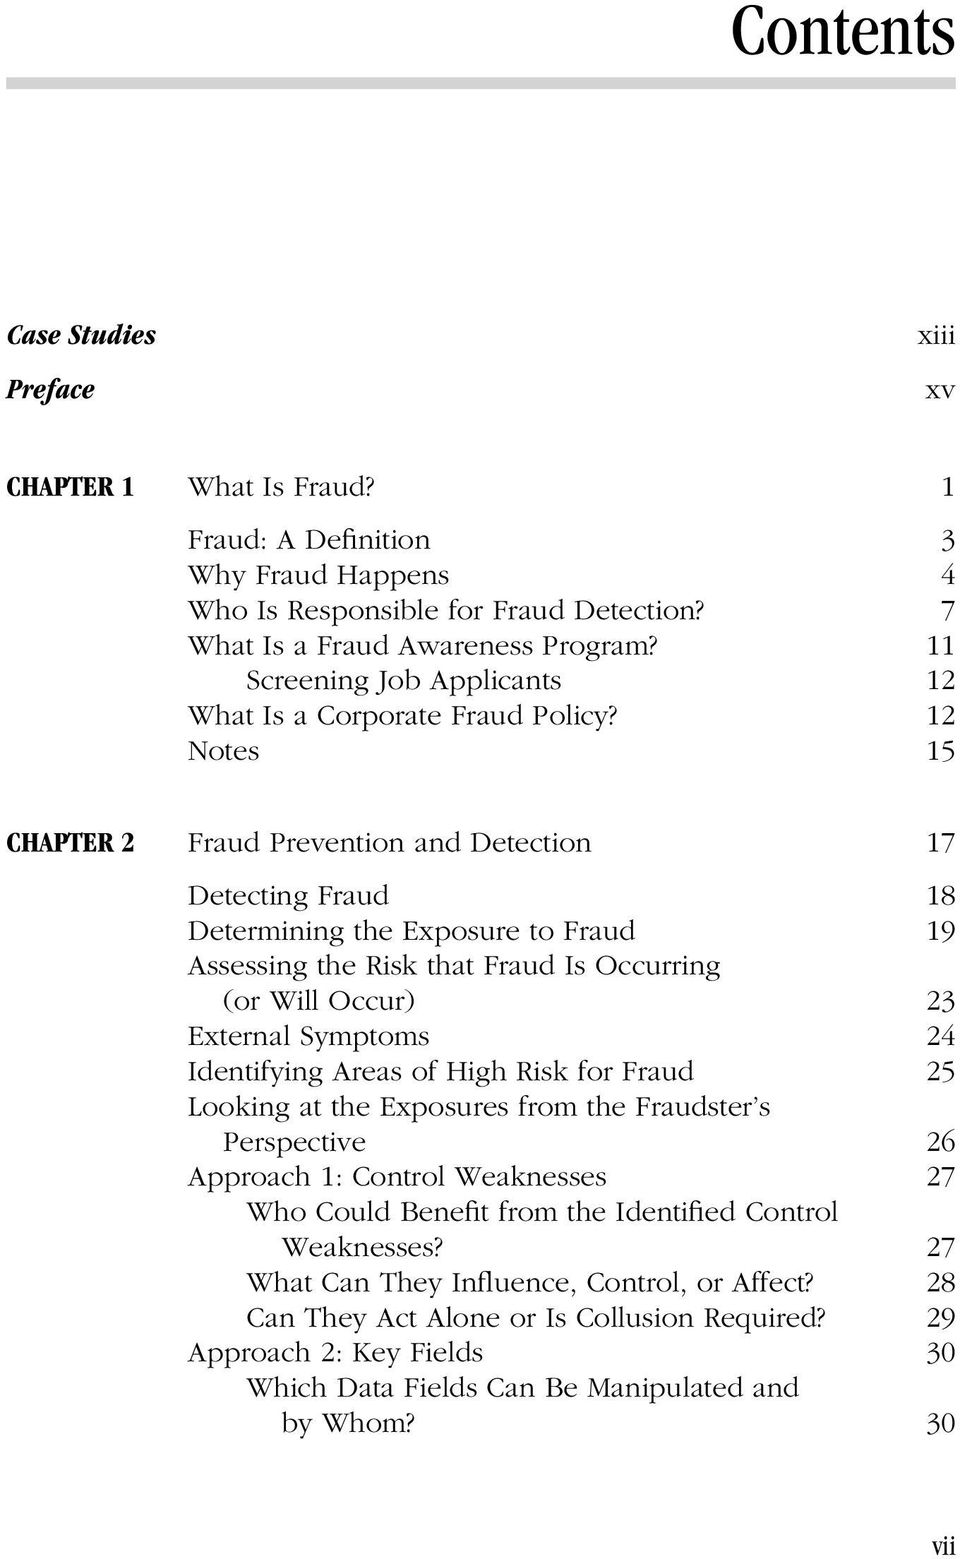 12 Notes 15 CHAPTER 2 Fraud Prevention and Detection 17 Detecting Fraud 18 Determining the Exposure to Fraud 19 Assessing the Risk that Fraud Is Occurring (or Will Occur) 23 External Symptoms 24